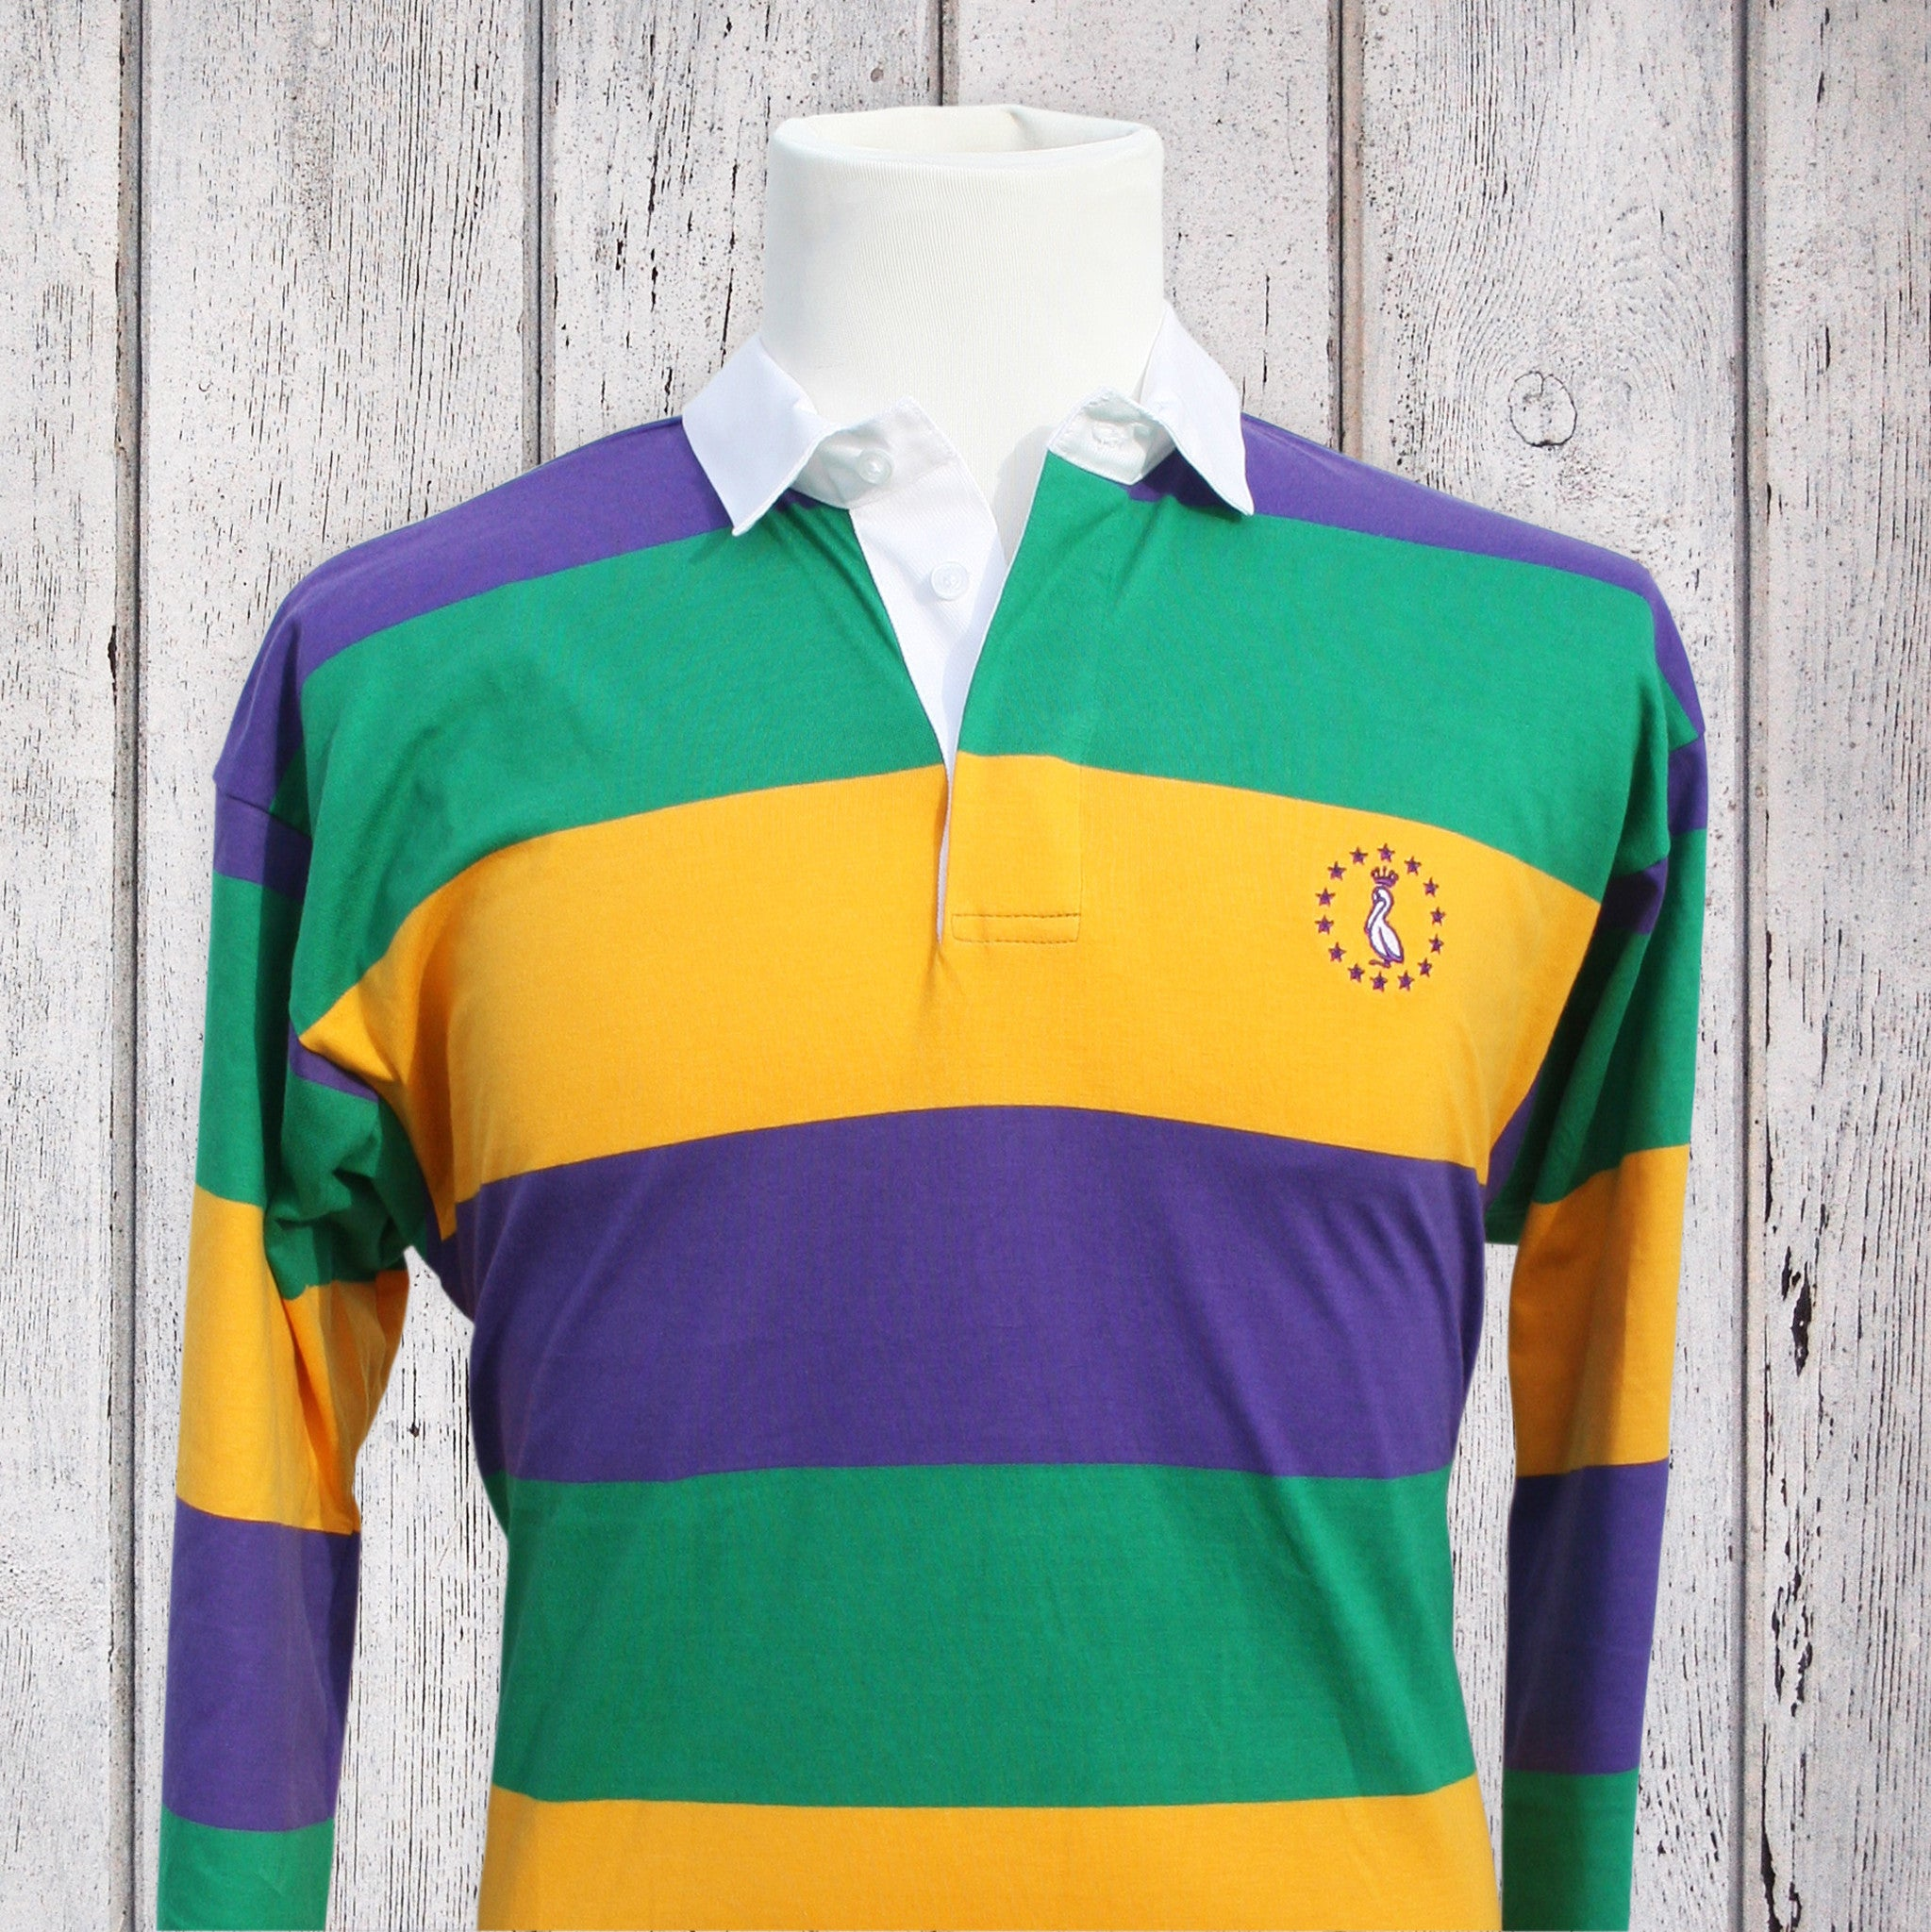 03699220 Mardi Gras Rugby Shirt - Repeat MG Stripes - Pelican Coast Clothing